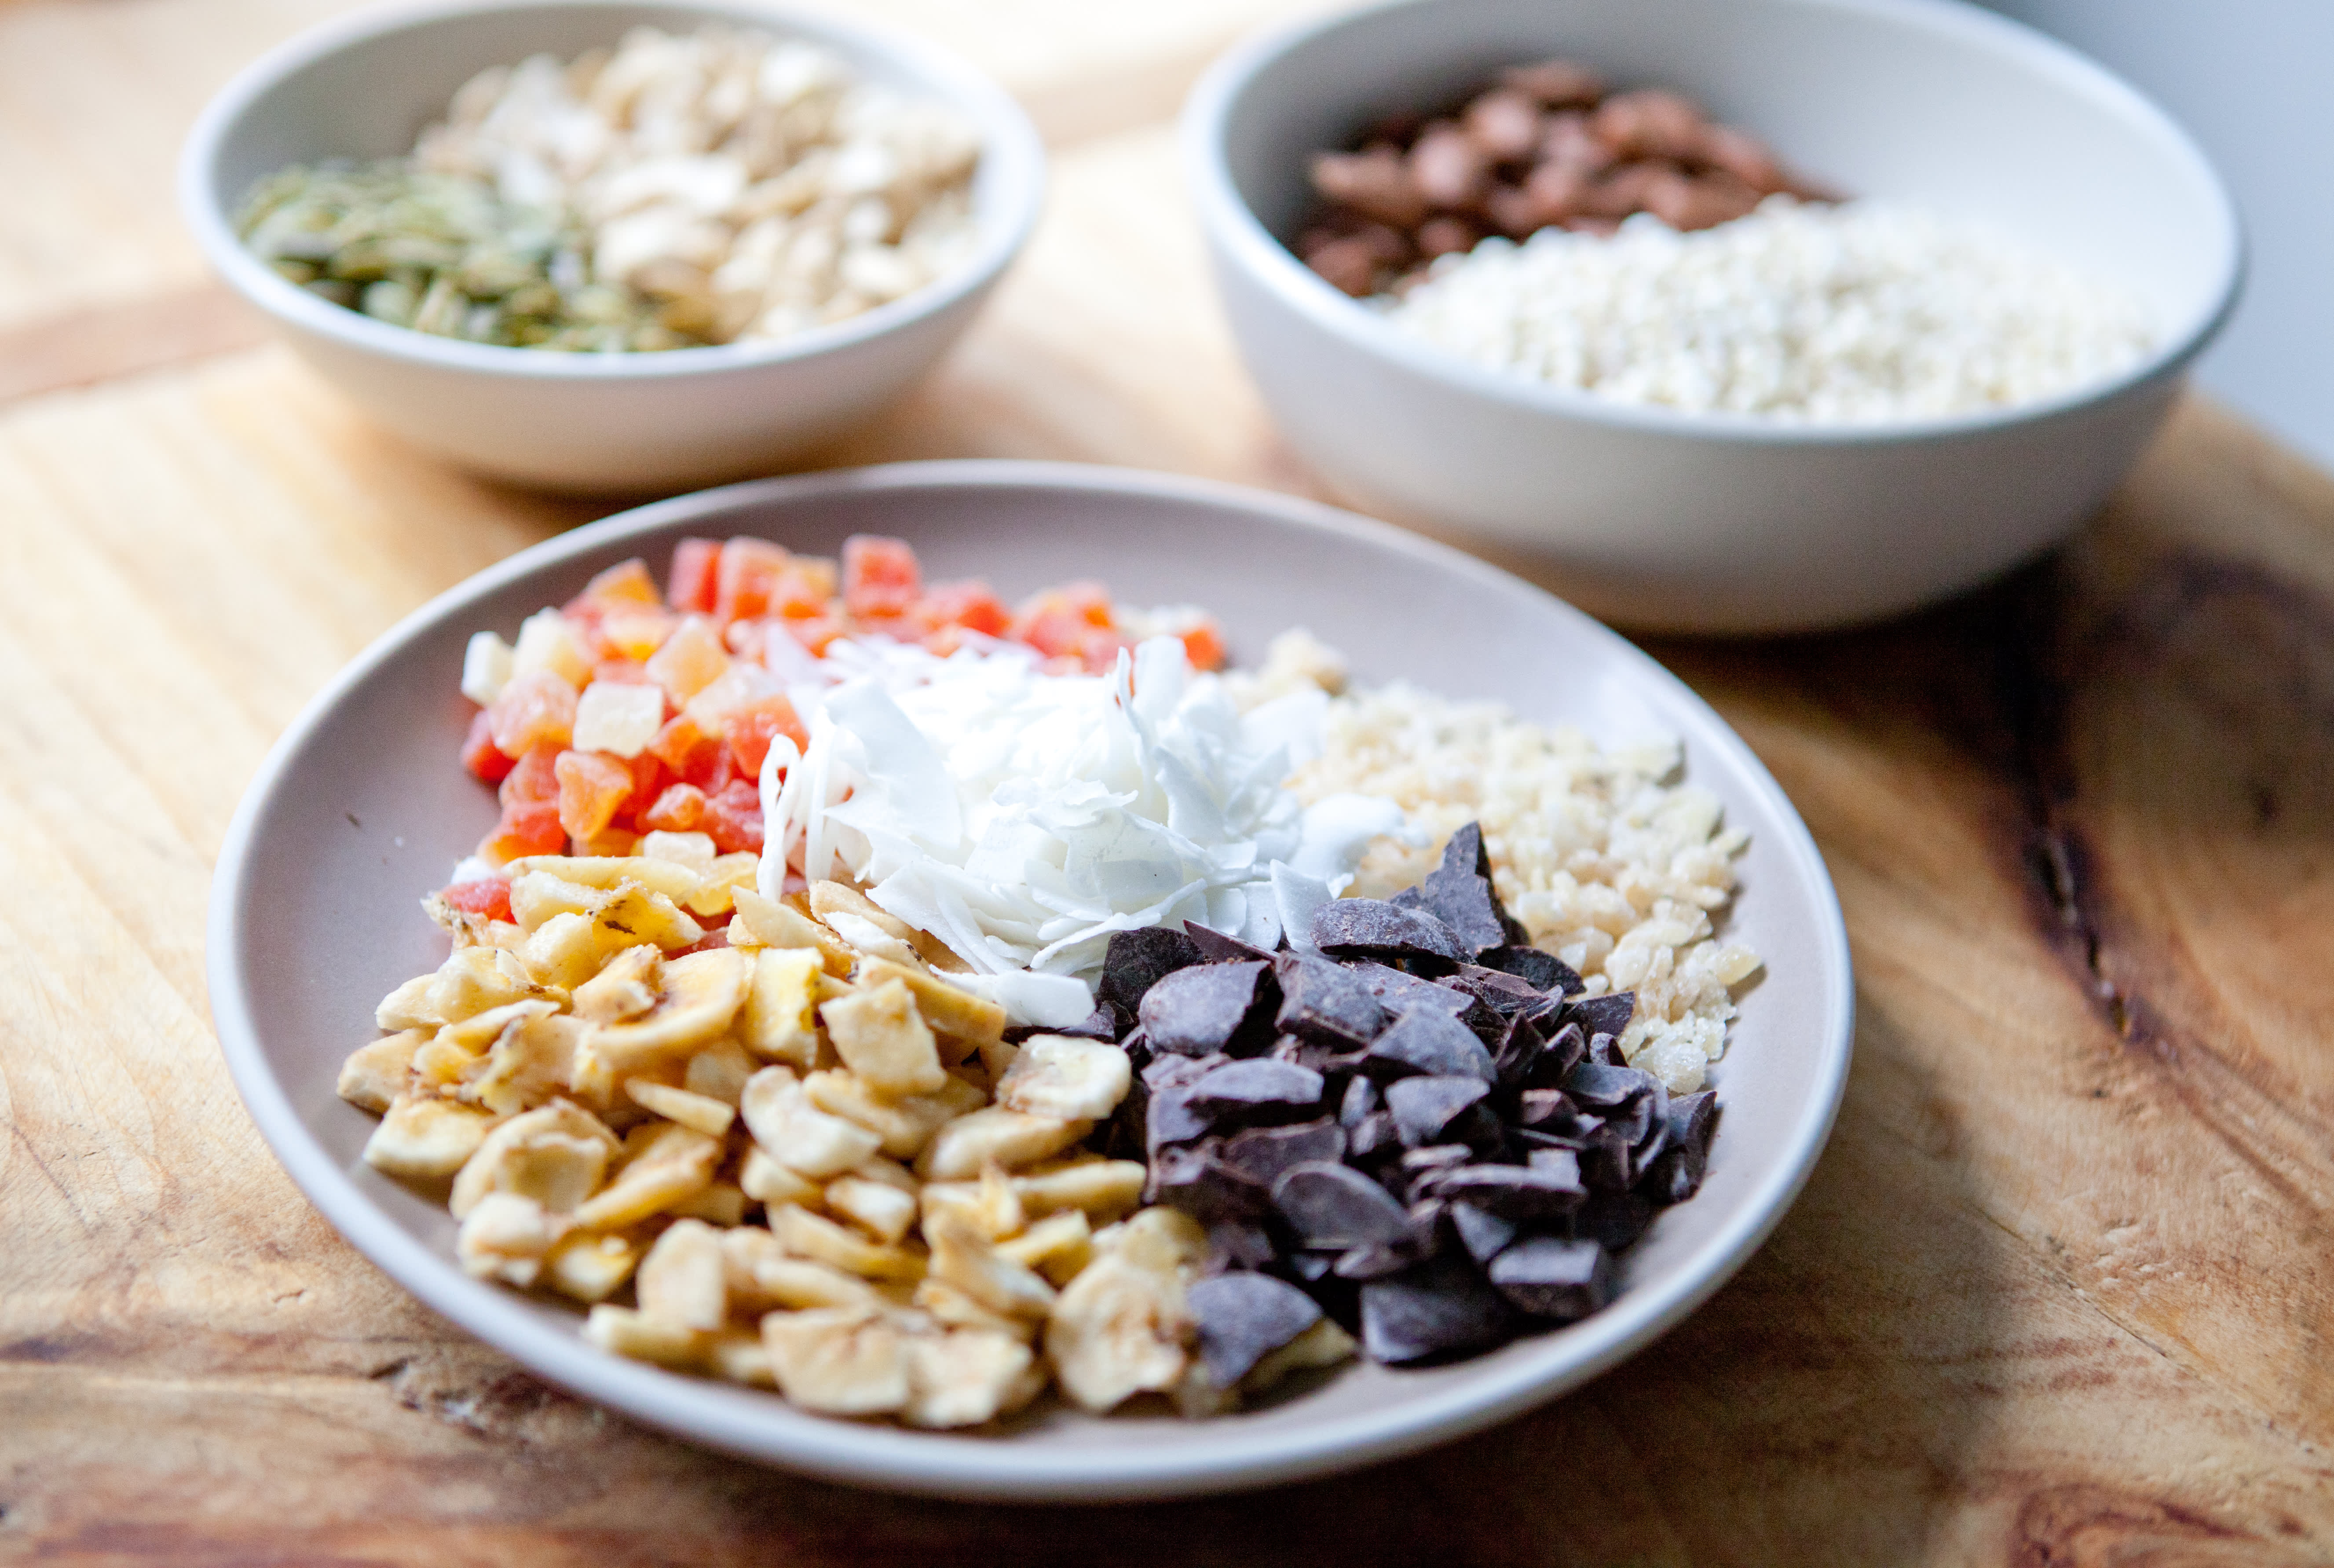 Recipe: Deluxe Tropical Trail Mix